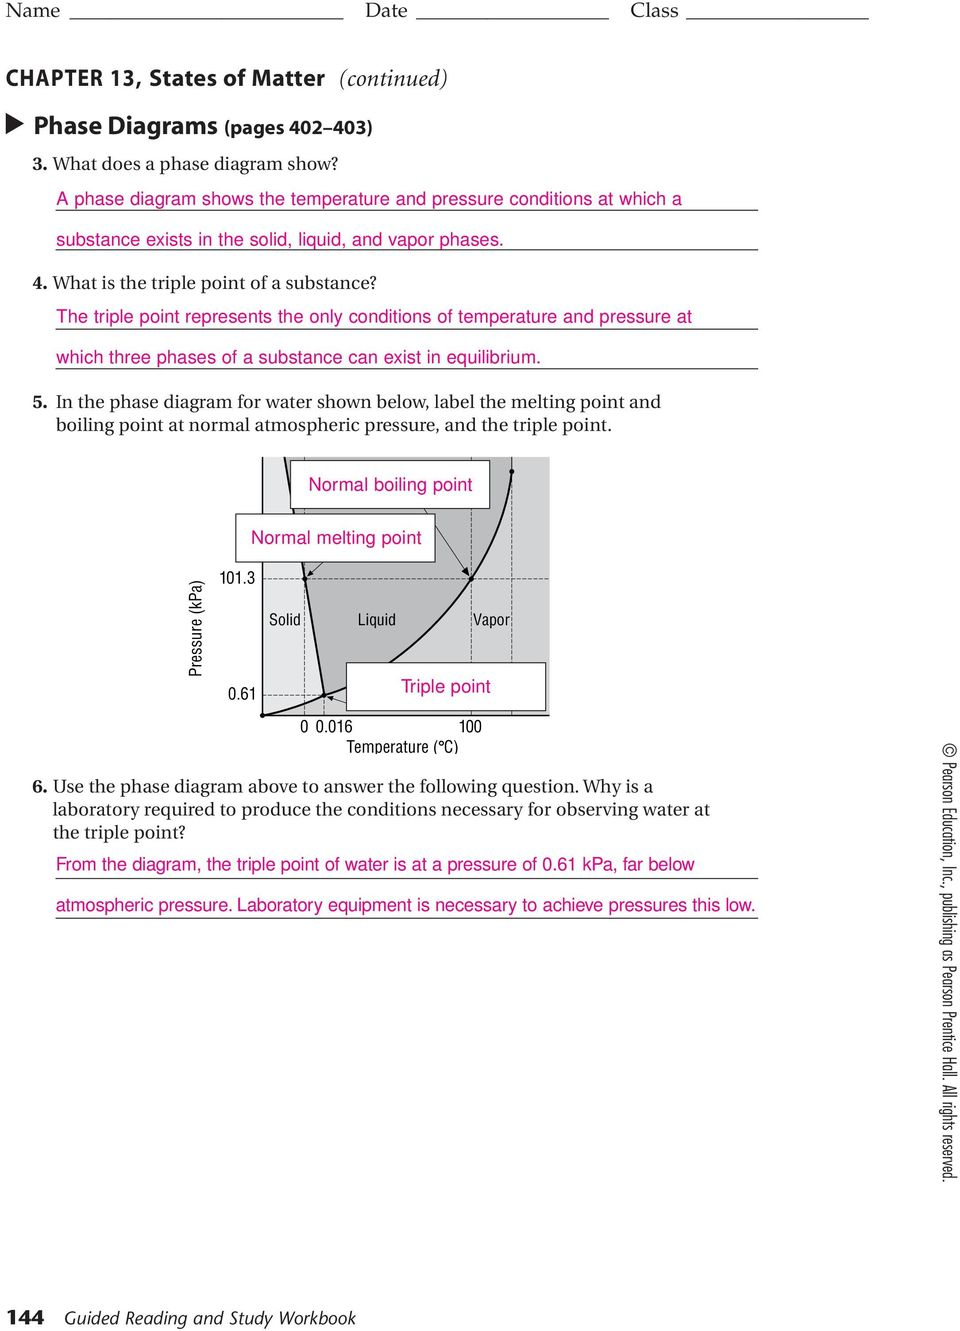 hight resolution of the triple point represents the only conditions of temperature and pressure at which three phases of